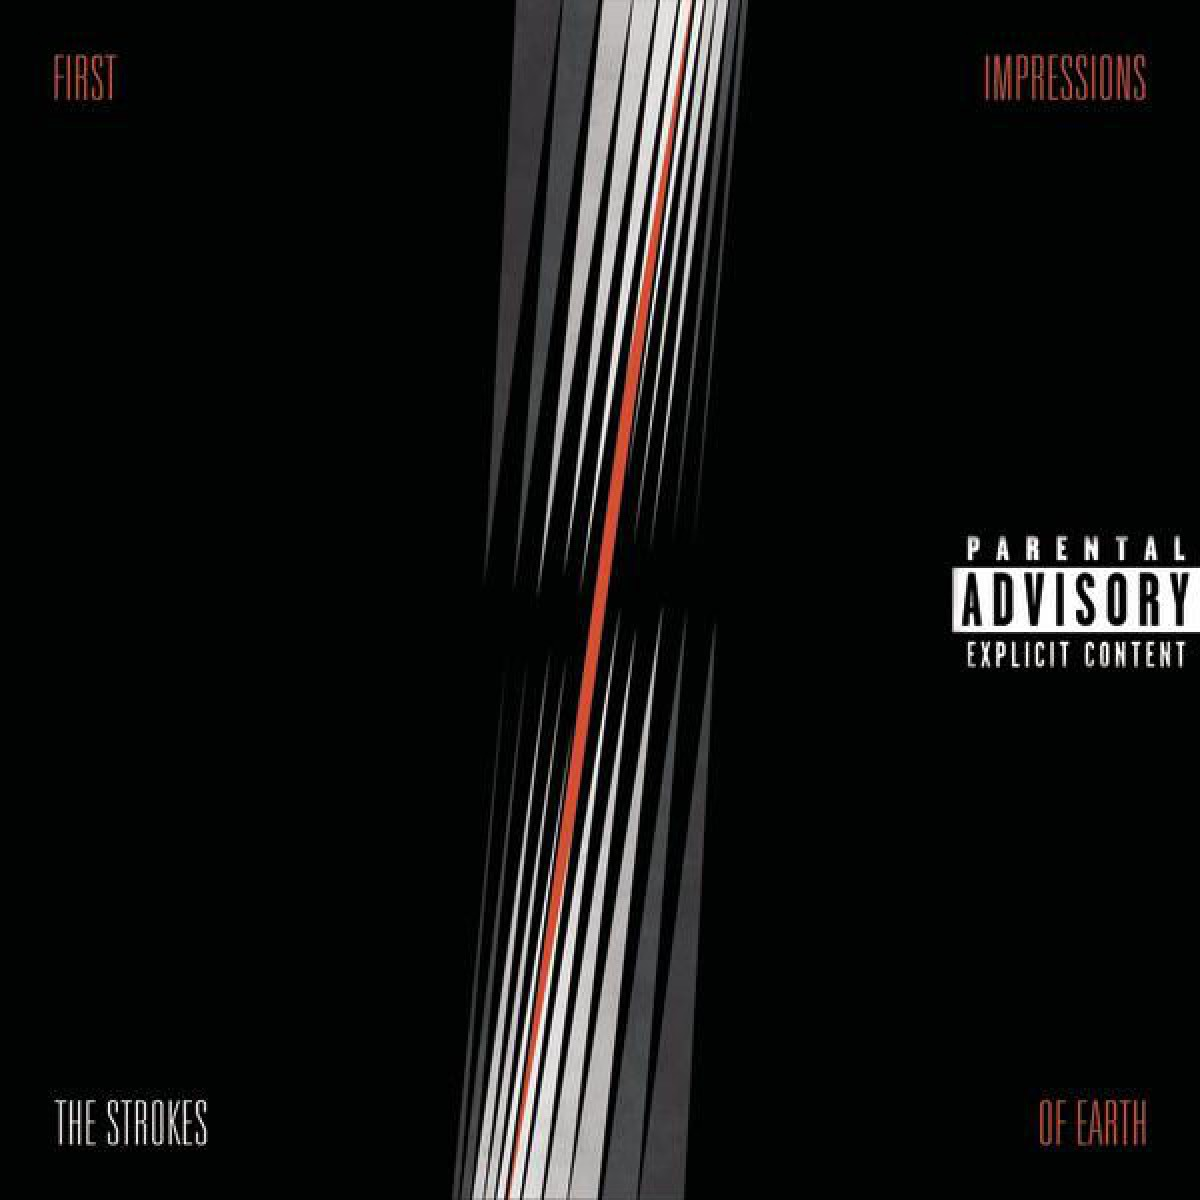 The Strokes - First Impressions of Earth VINYL - 82876731771